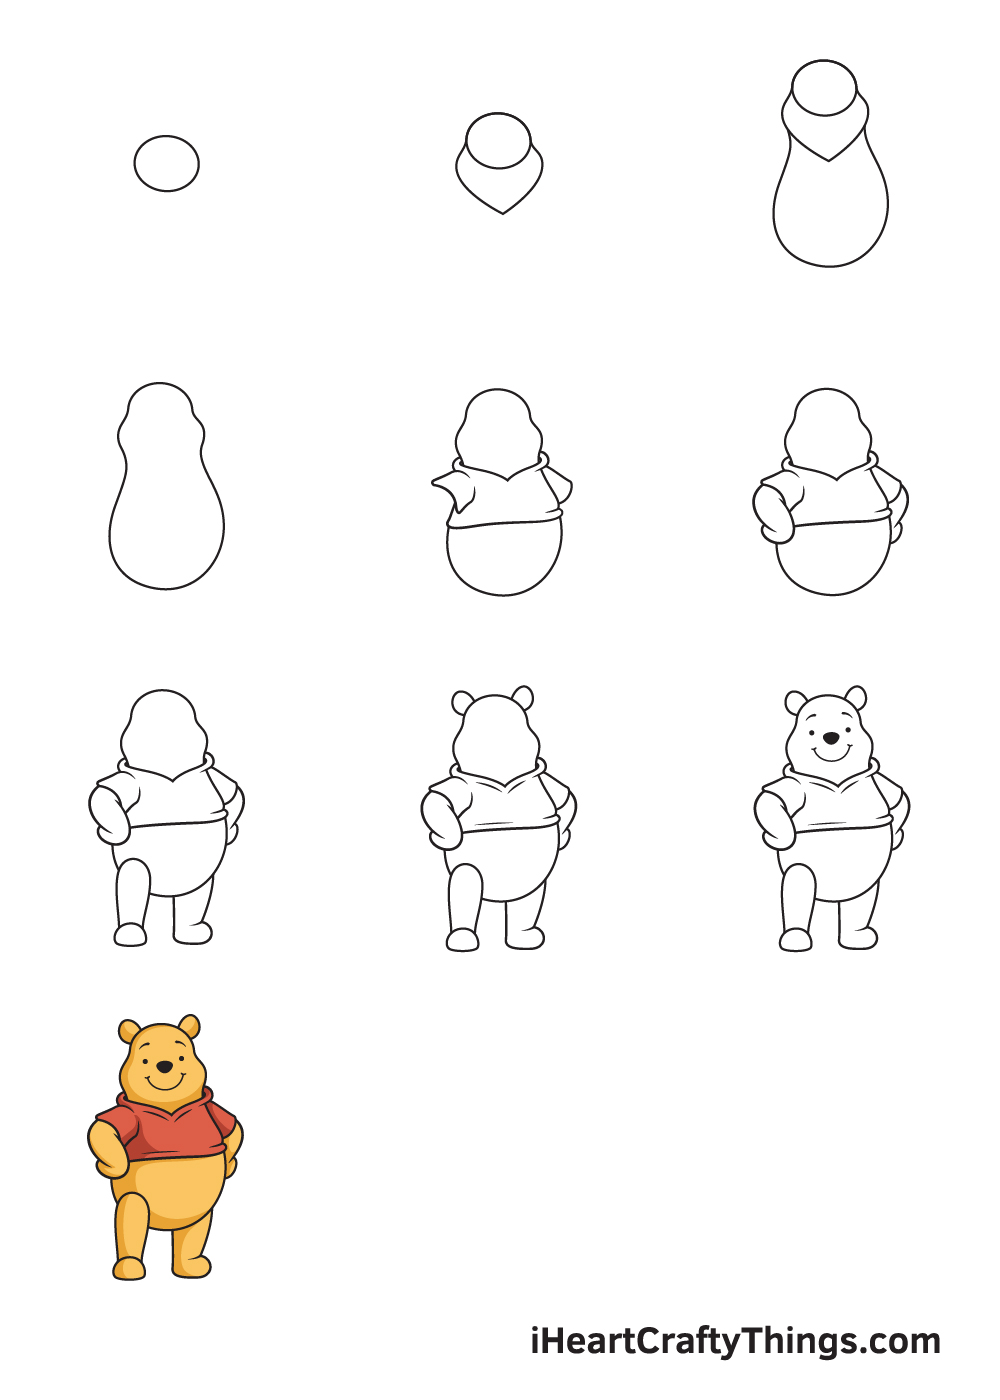 drawing winnie the pooh in 9 easy steps